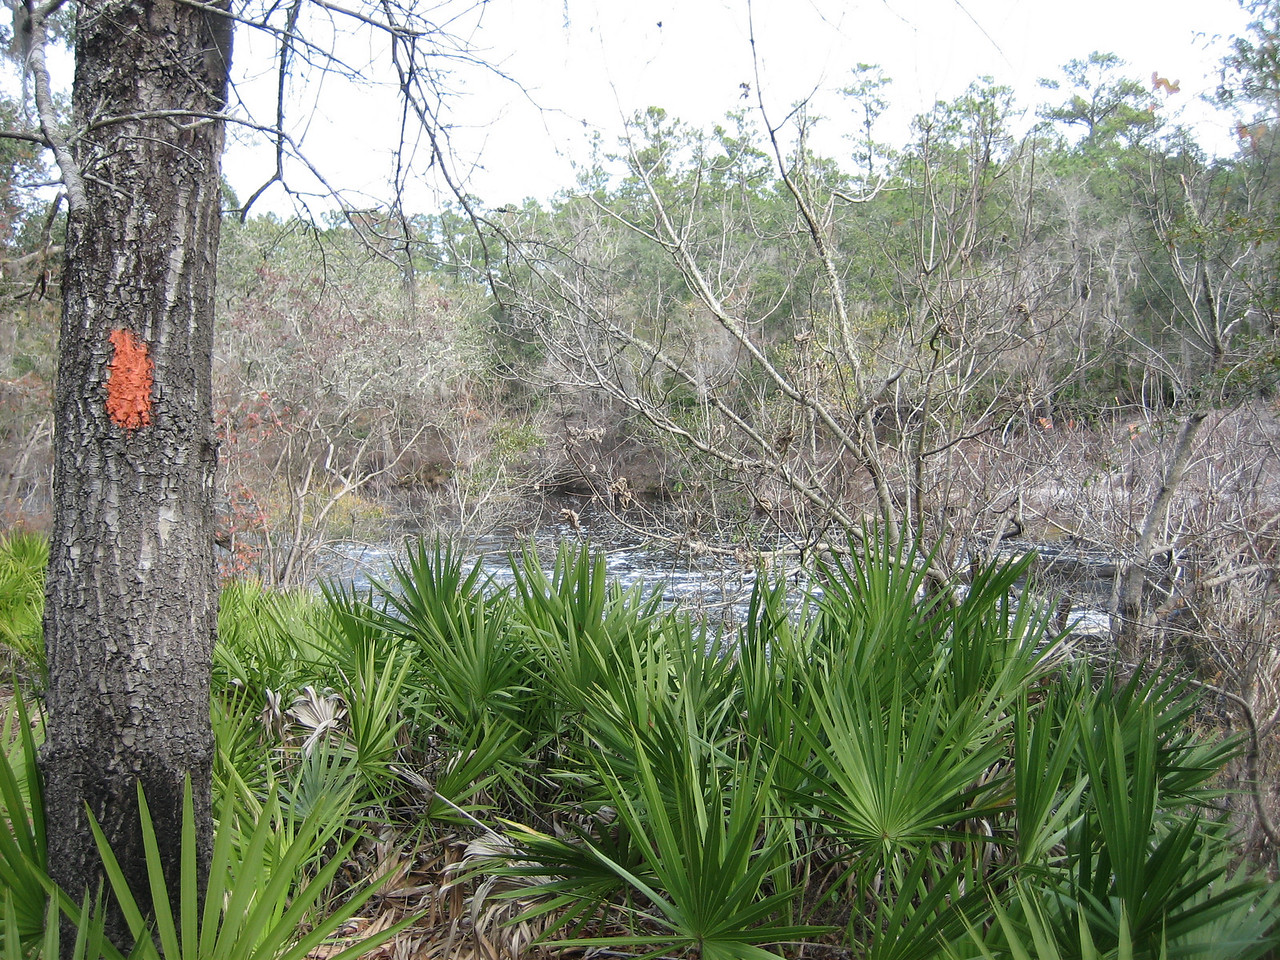 Florida Trail overlooks Little Shoals<br /> PHOTO CREDIT: Sandra Friend / Florida Trail Association